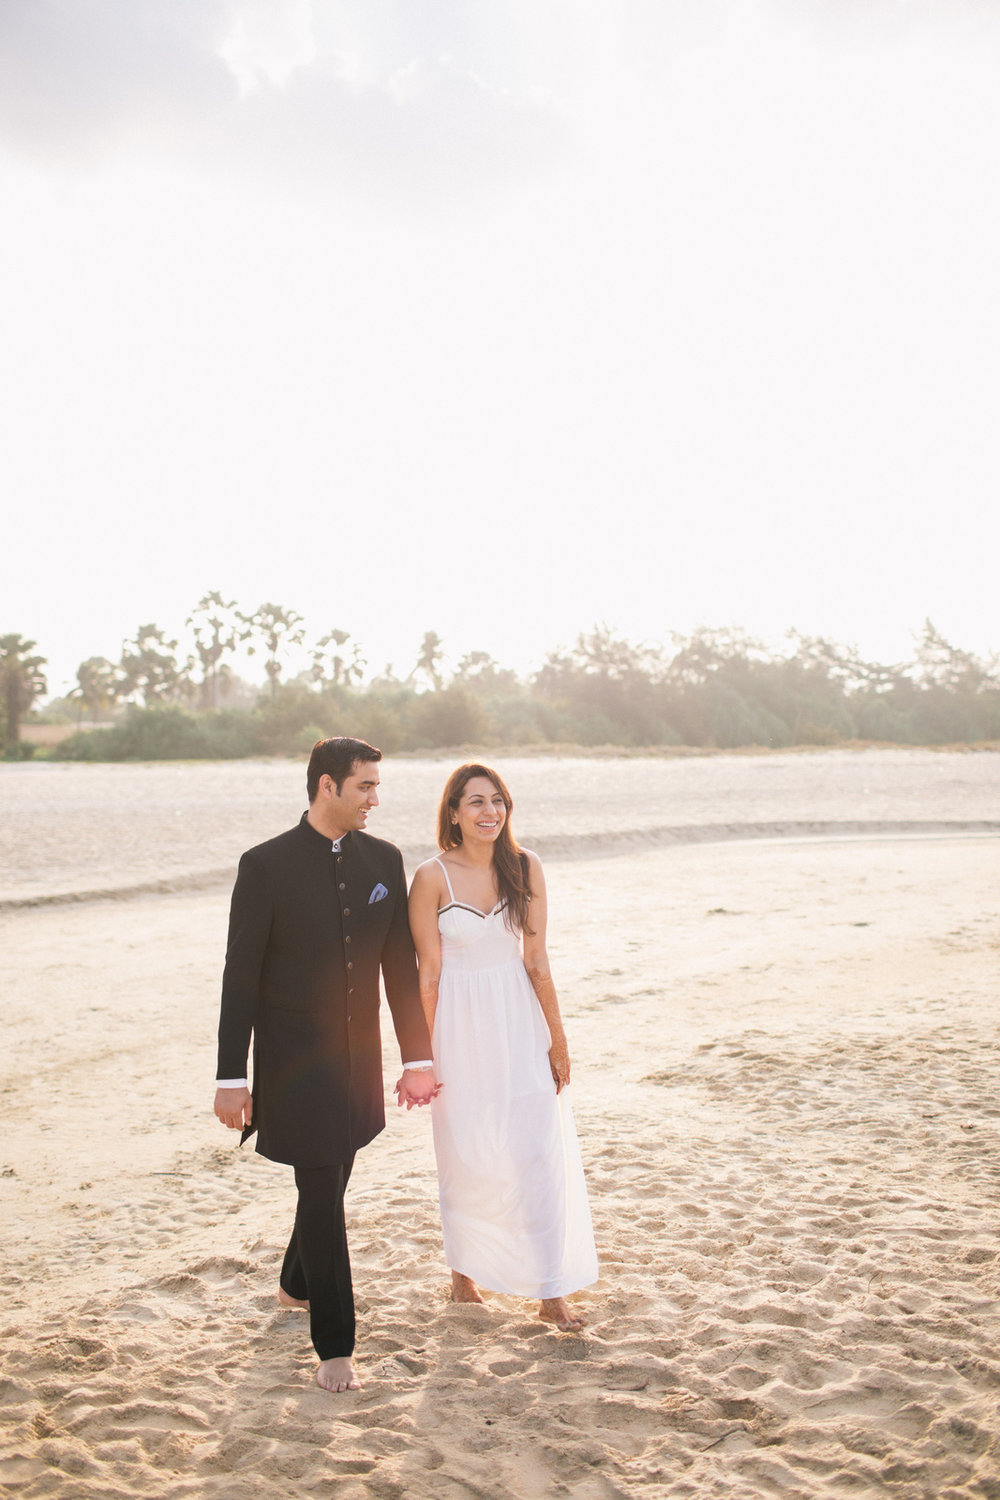 goa-beach-pre-wedding-couple-session-into-candid-photography-mk-10.jpg